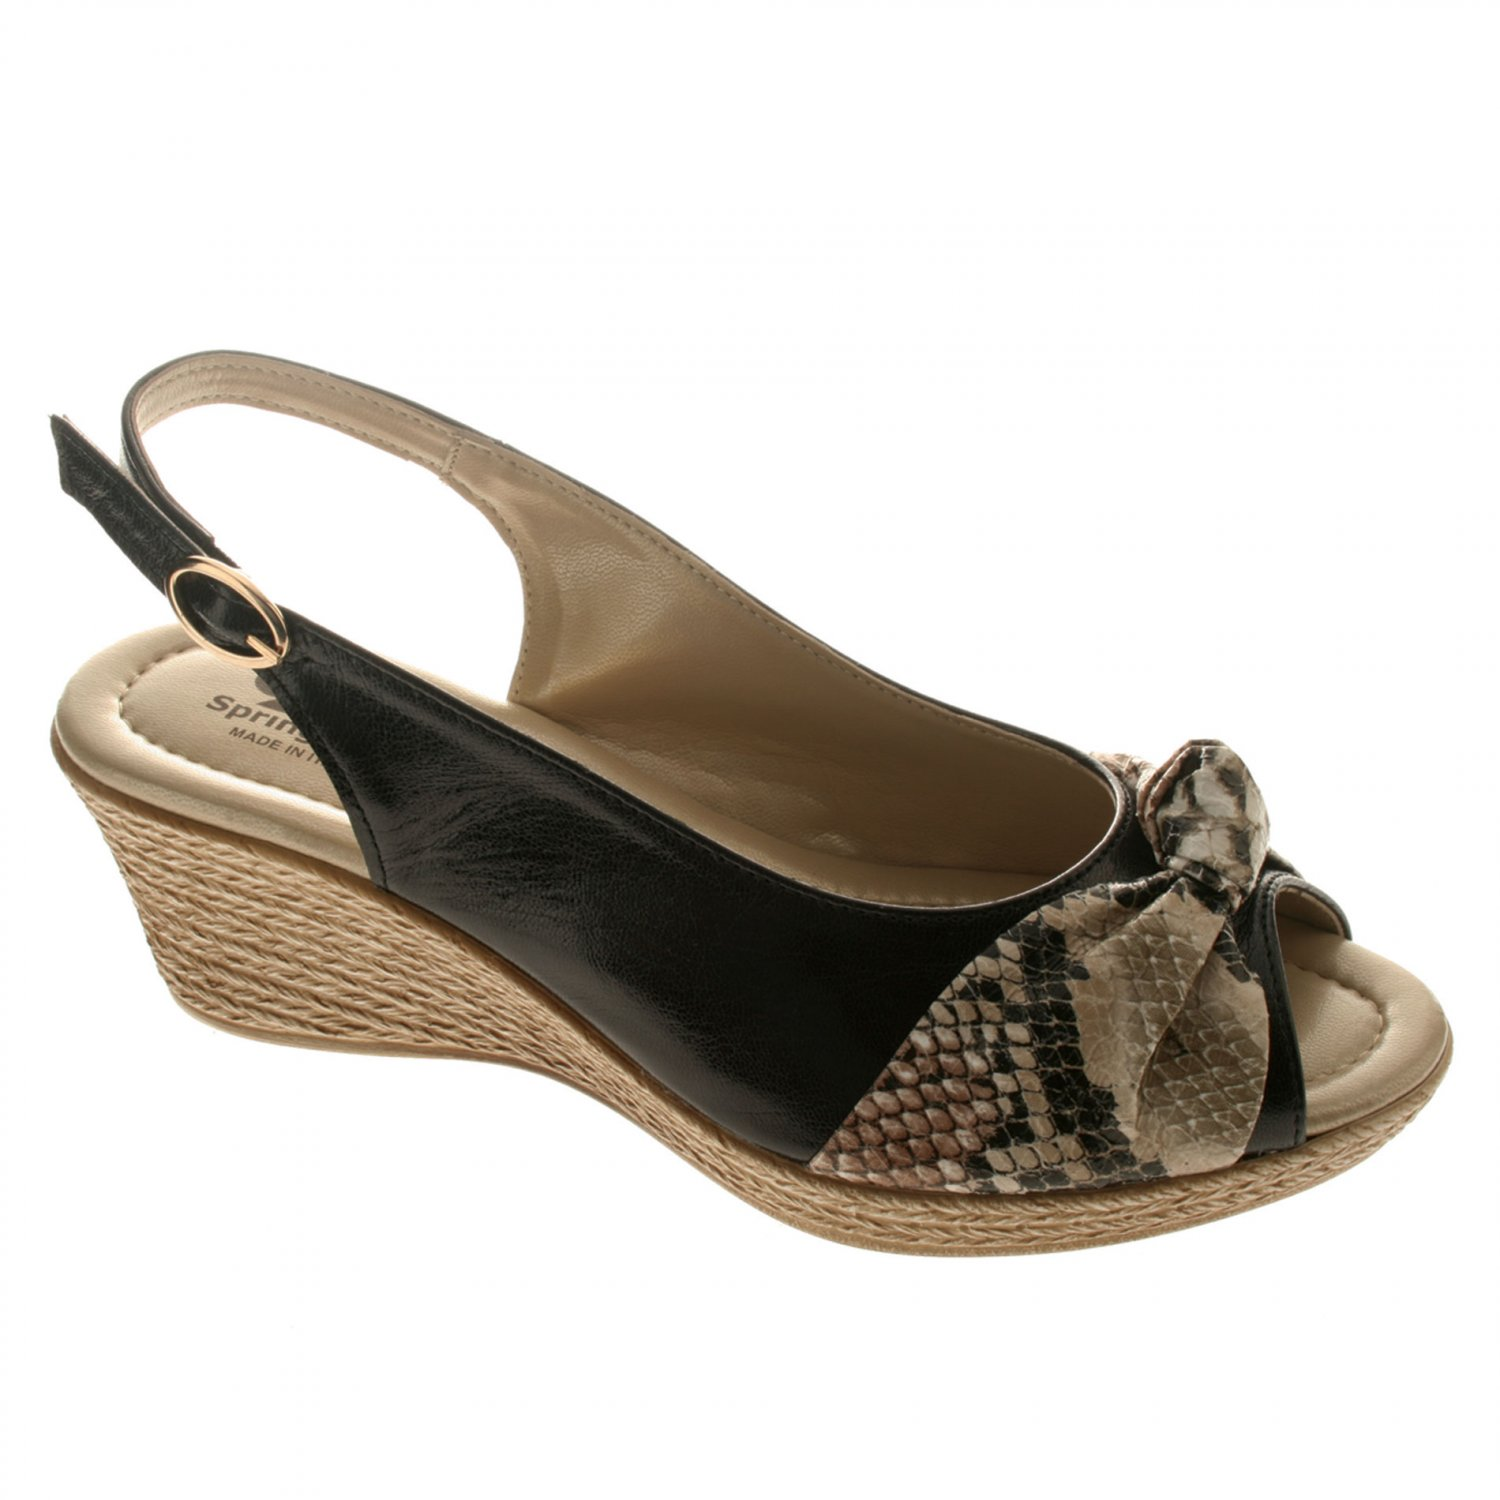 Spring Step AKILAH Sandals Shoes All Sizes & Colors $6